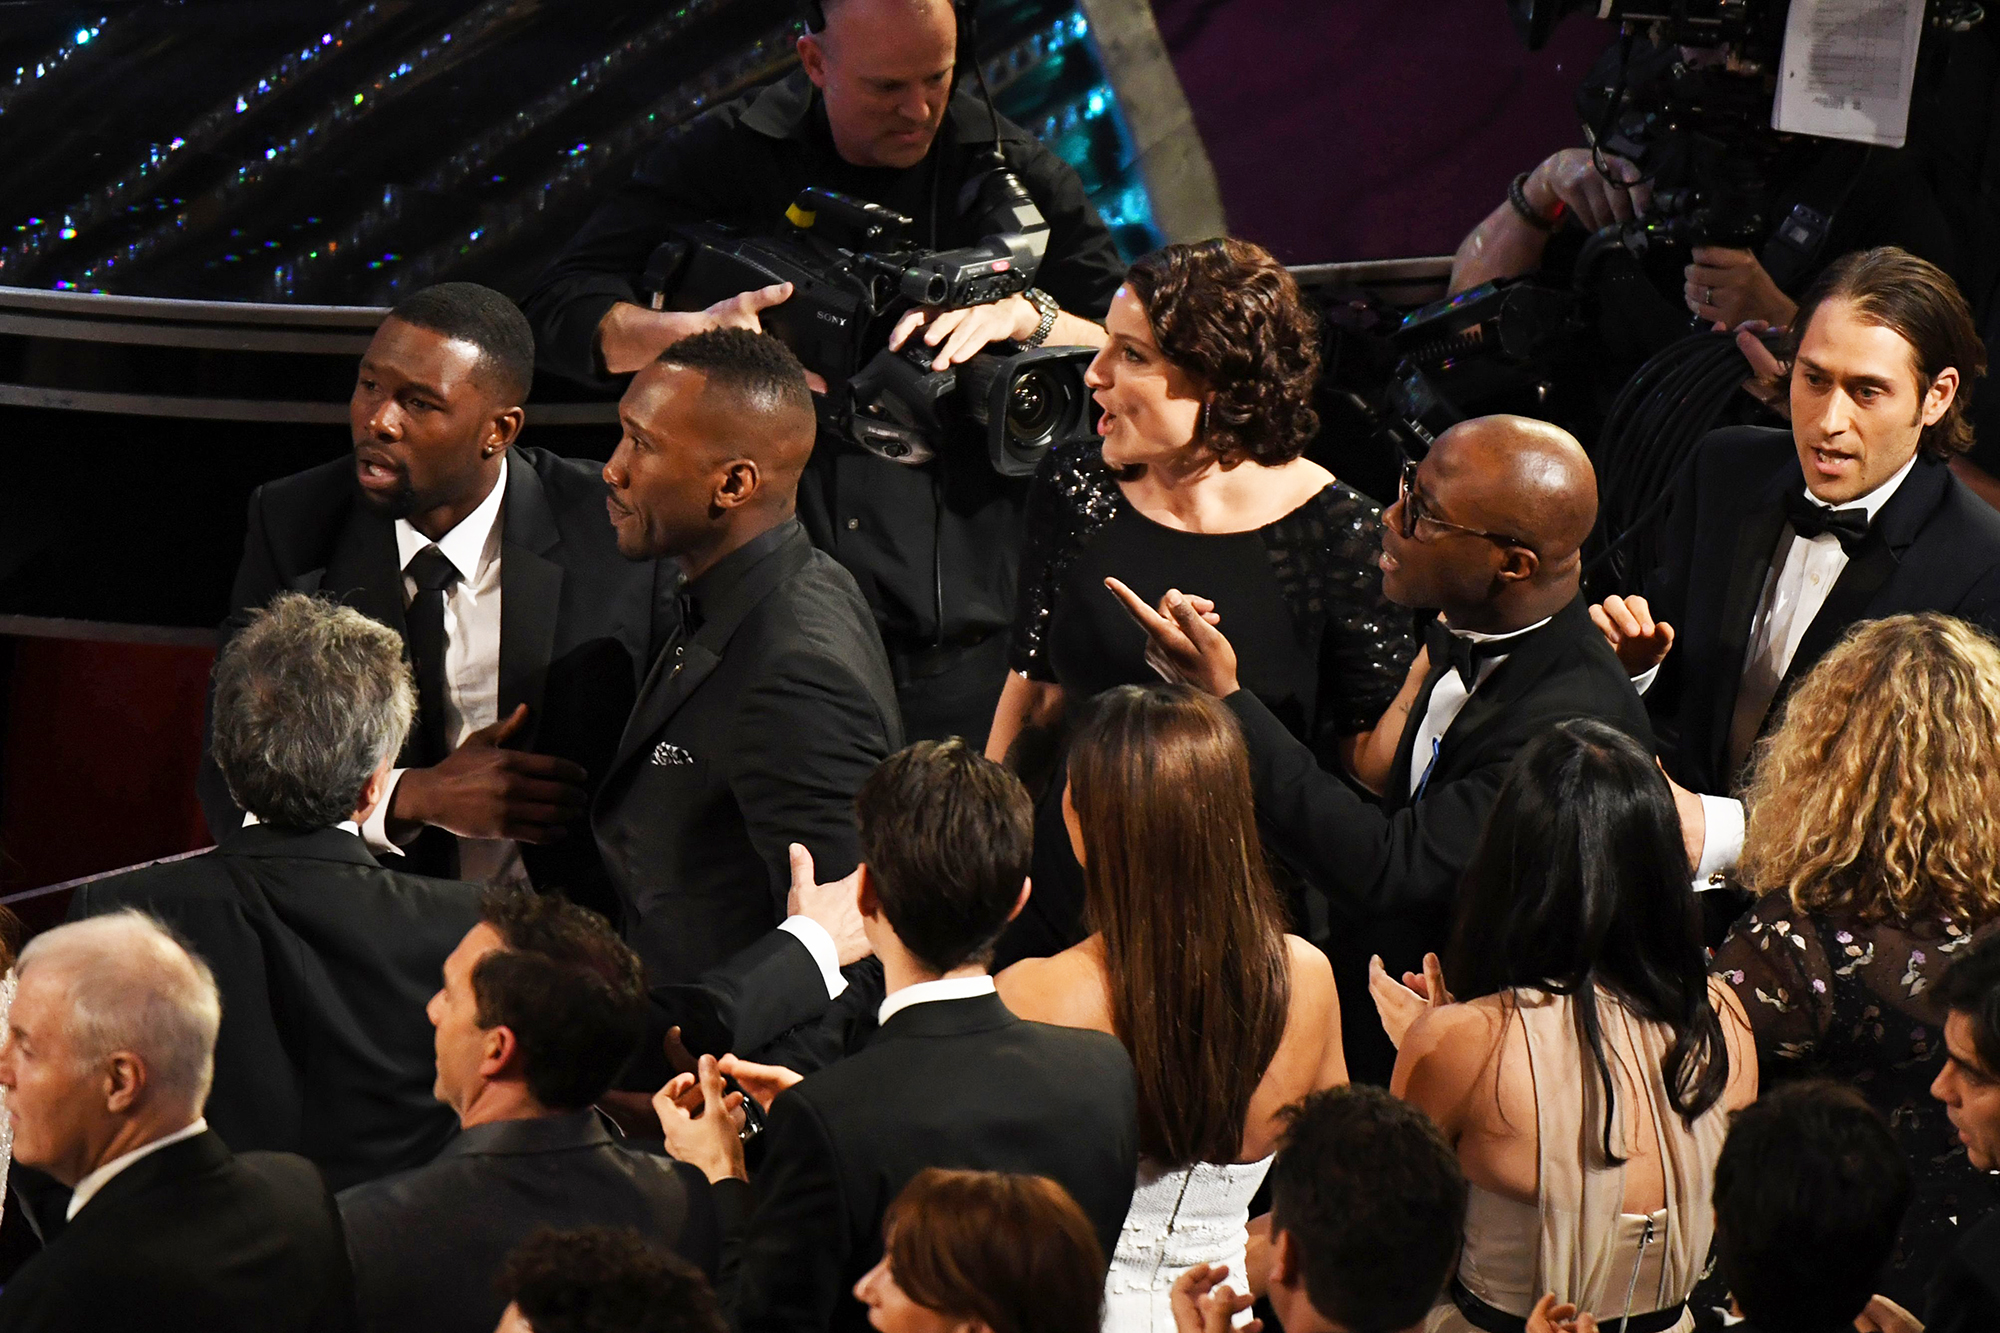 The cast and crew of Moonlight react after they won the Best Picture Oscar, on Feb. 26, 2017 in Hollywood, Calif.